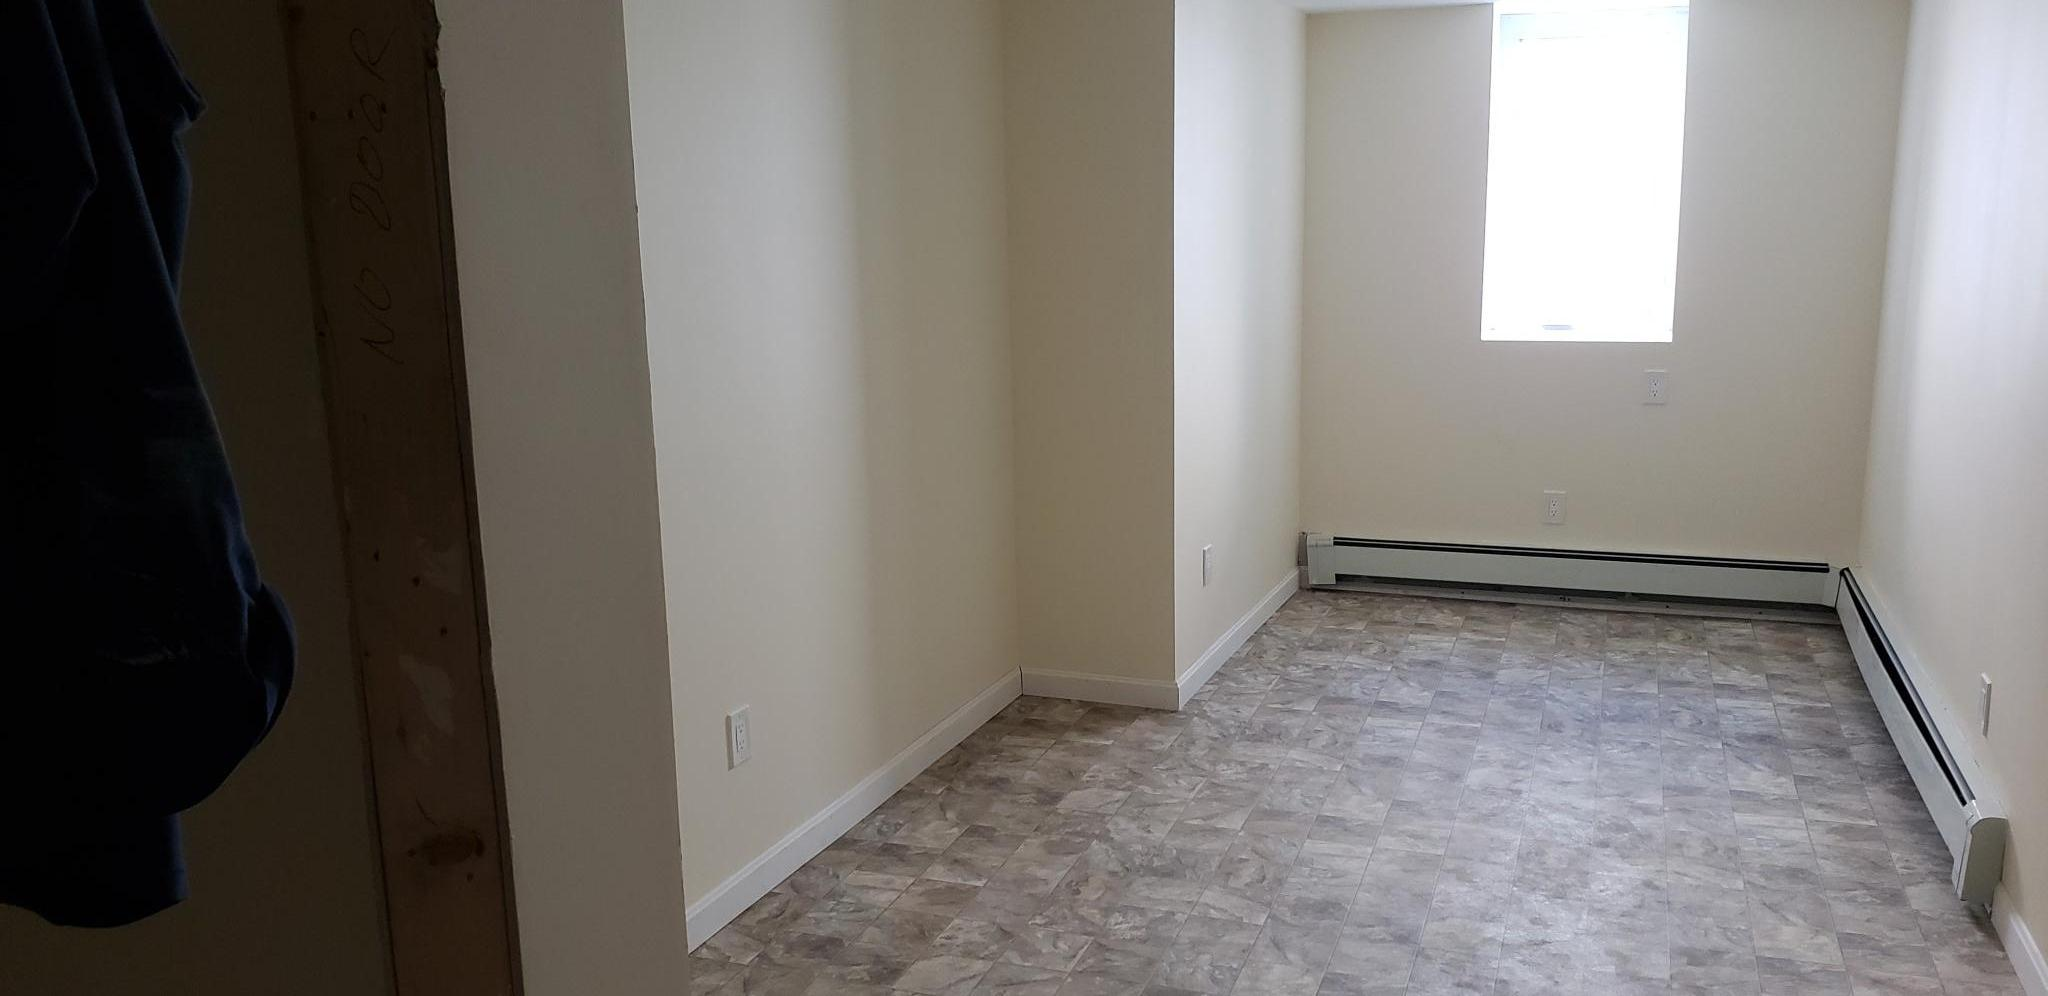 3 Beds, 1 Bath apartment in Revere for $2,200